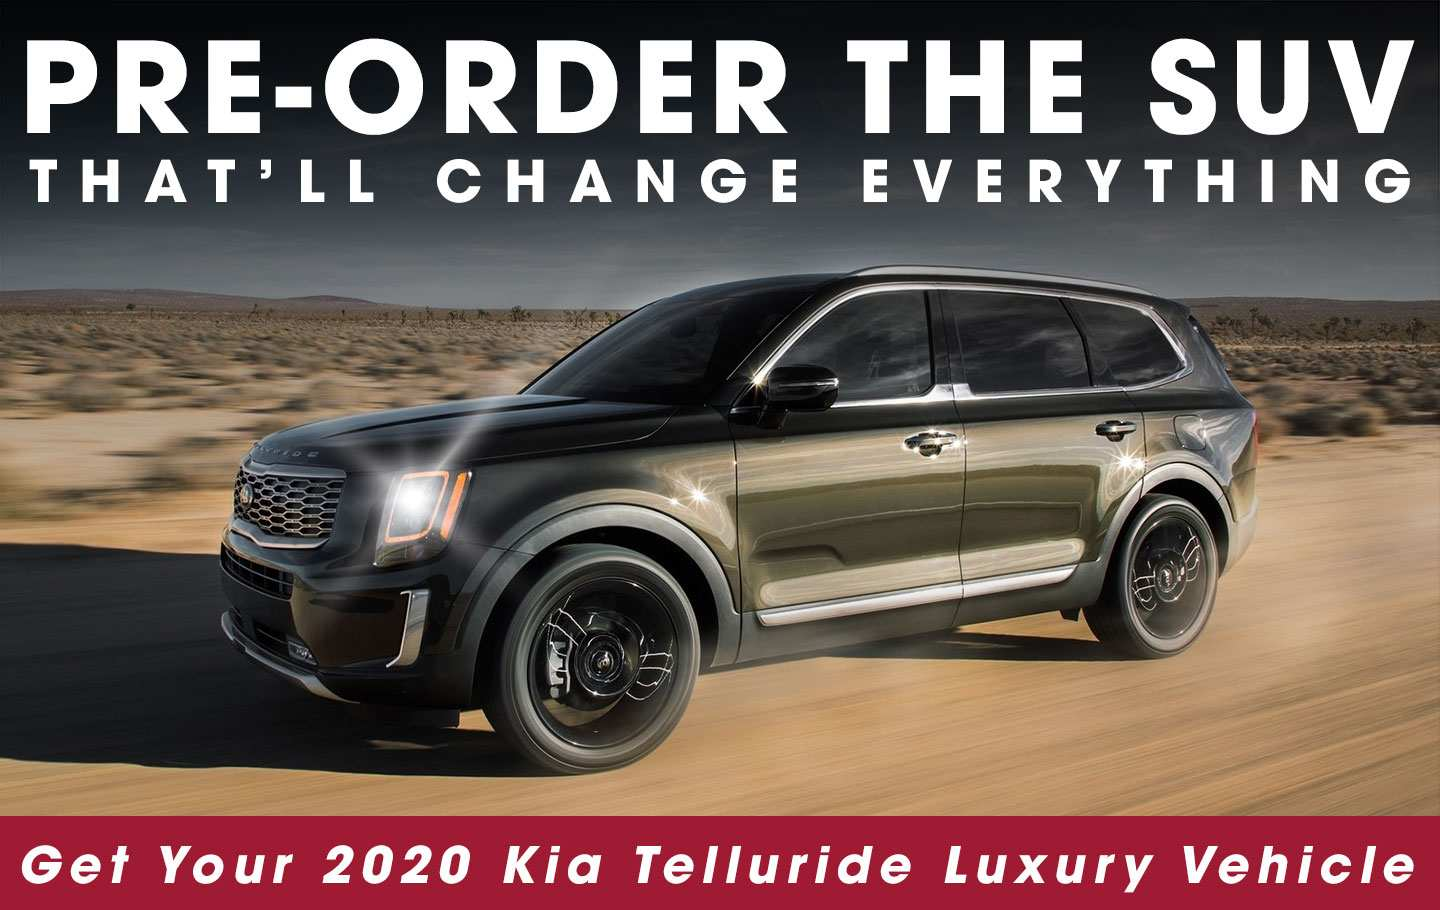 82 All New 2020 Kia Telluride Warranty Engine